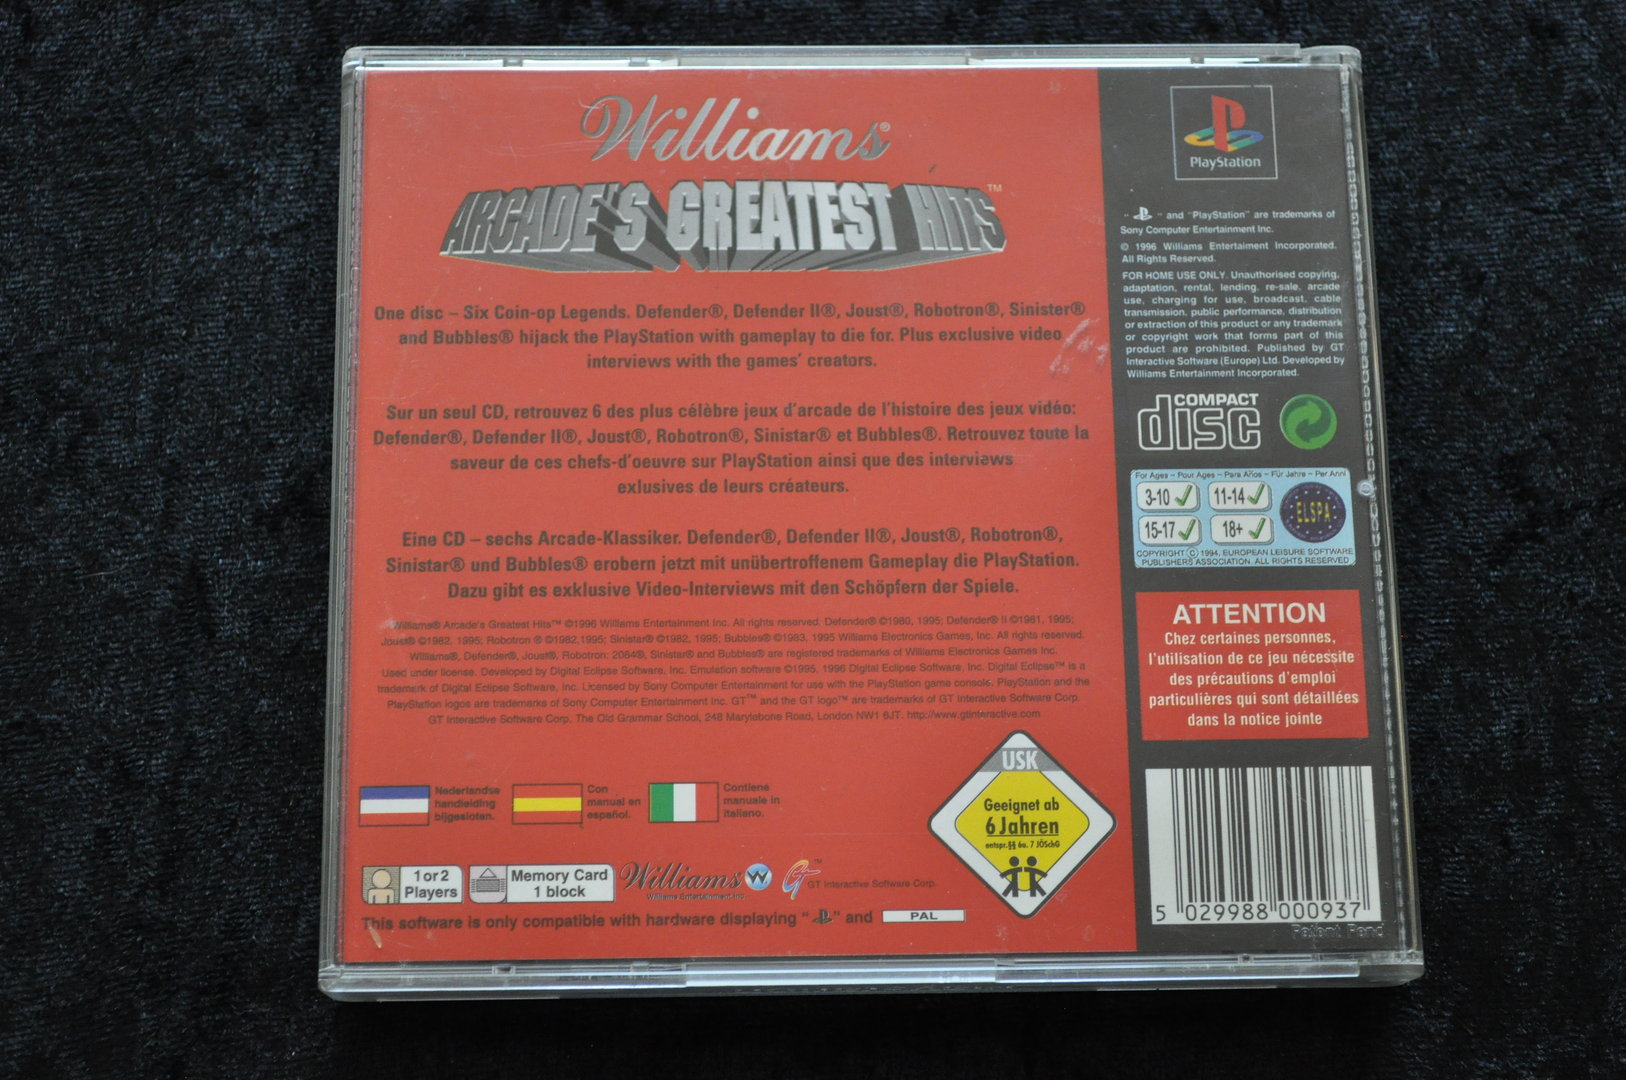 Williams Arcades Greatest Hits Playstation 1 PS 1